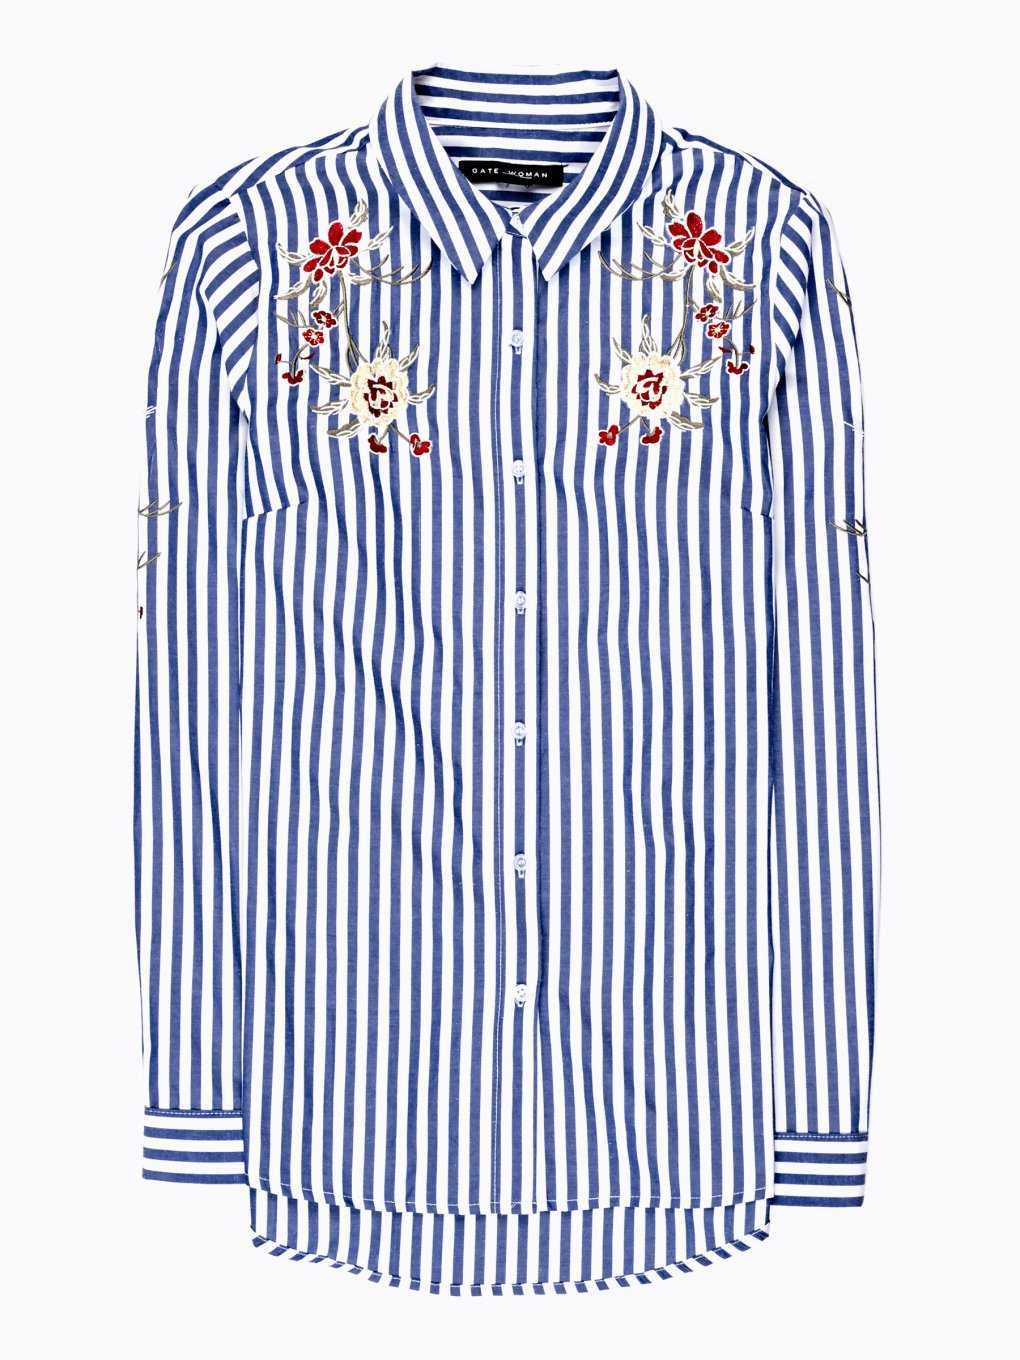 STRIPED SHIRT WITH FLORAL EMROIDERY